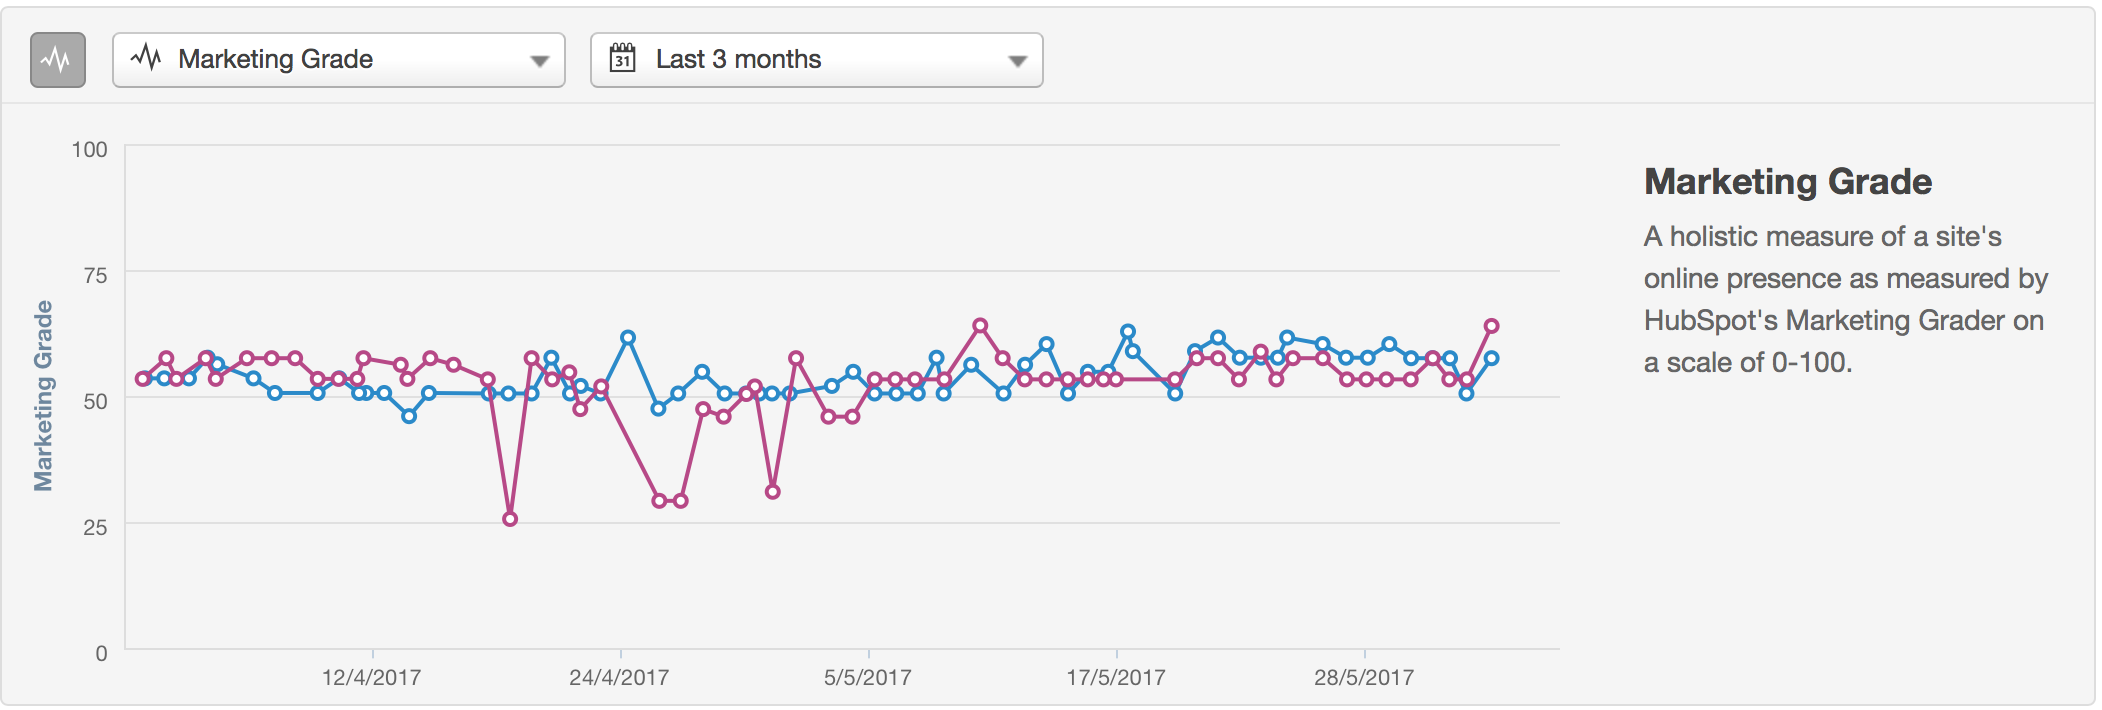 6 of the Best Tools for Digital Marketing Competitive Analysis - HubSpot - Apple V's Microsoft Marketing Grade